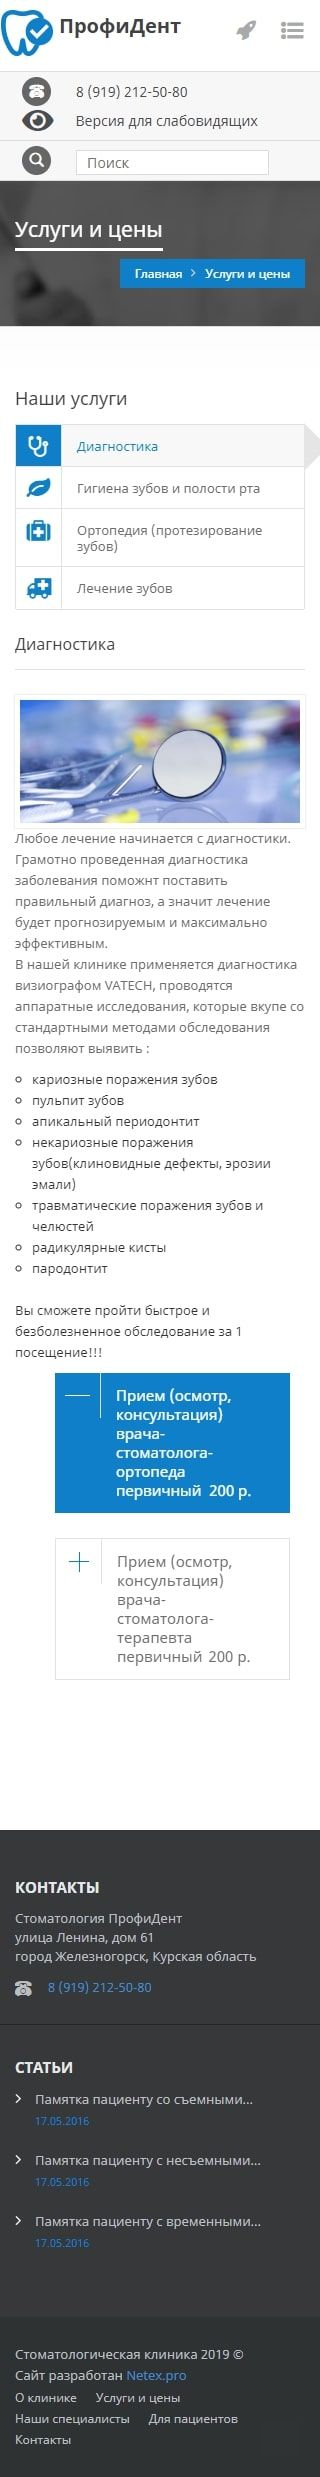 image of the mobile version of the site «Profident»